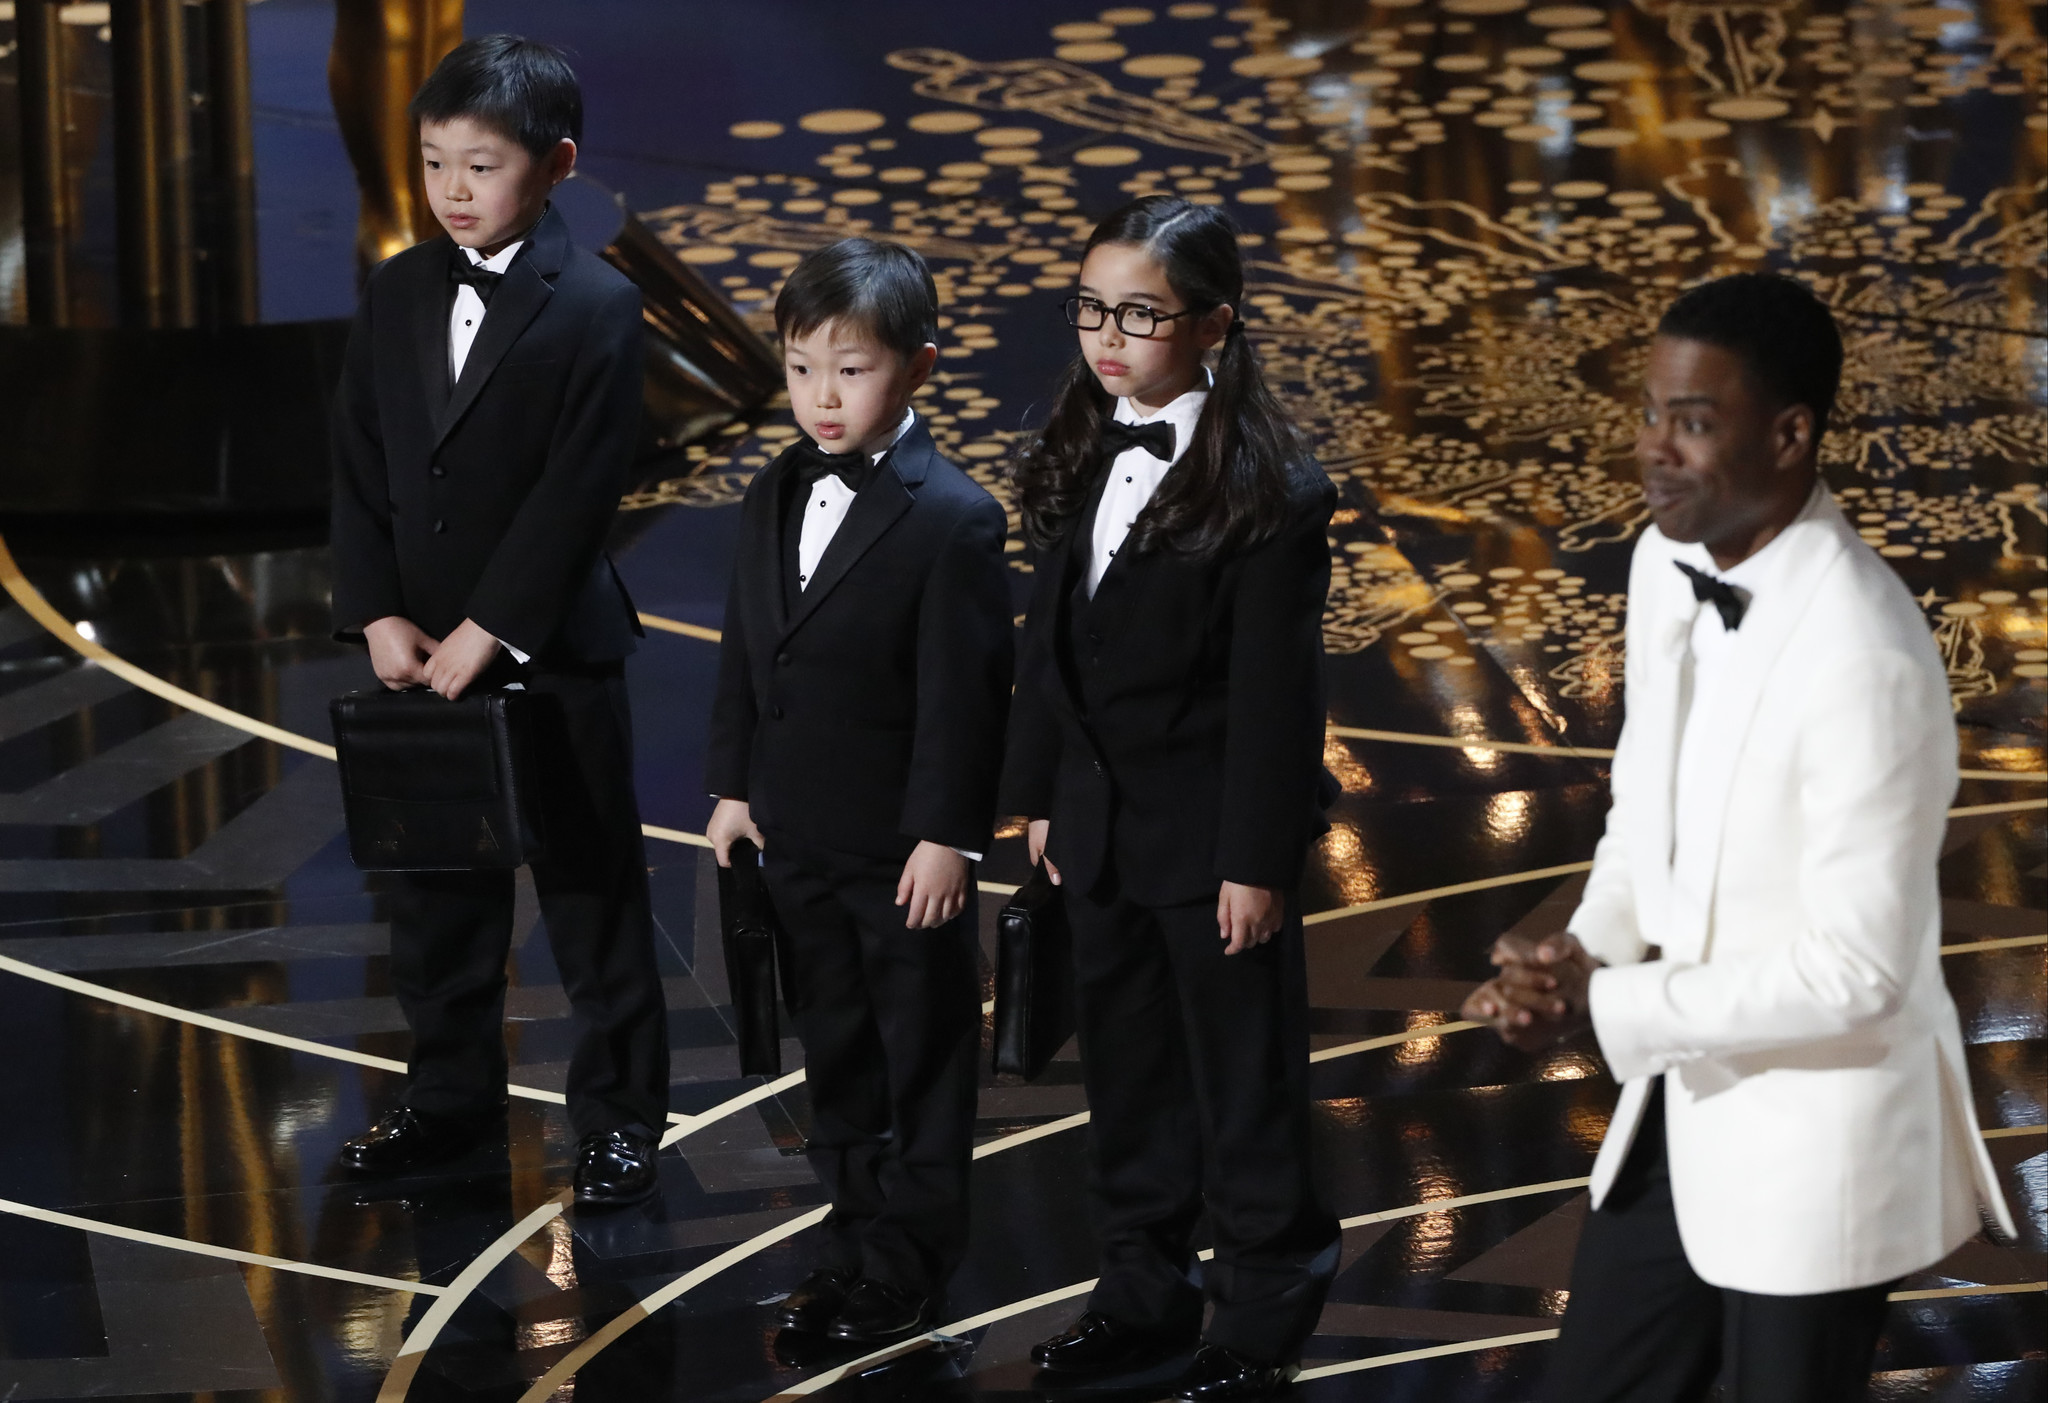 2016 Oscar host Chris Rock, right, introduces children as PriceWaterhouseCopper reps. (Robert Gauthier / Los Angeles Times)